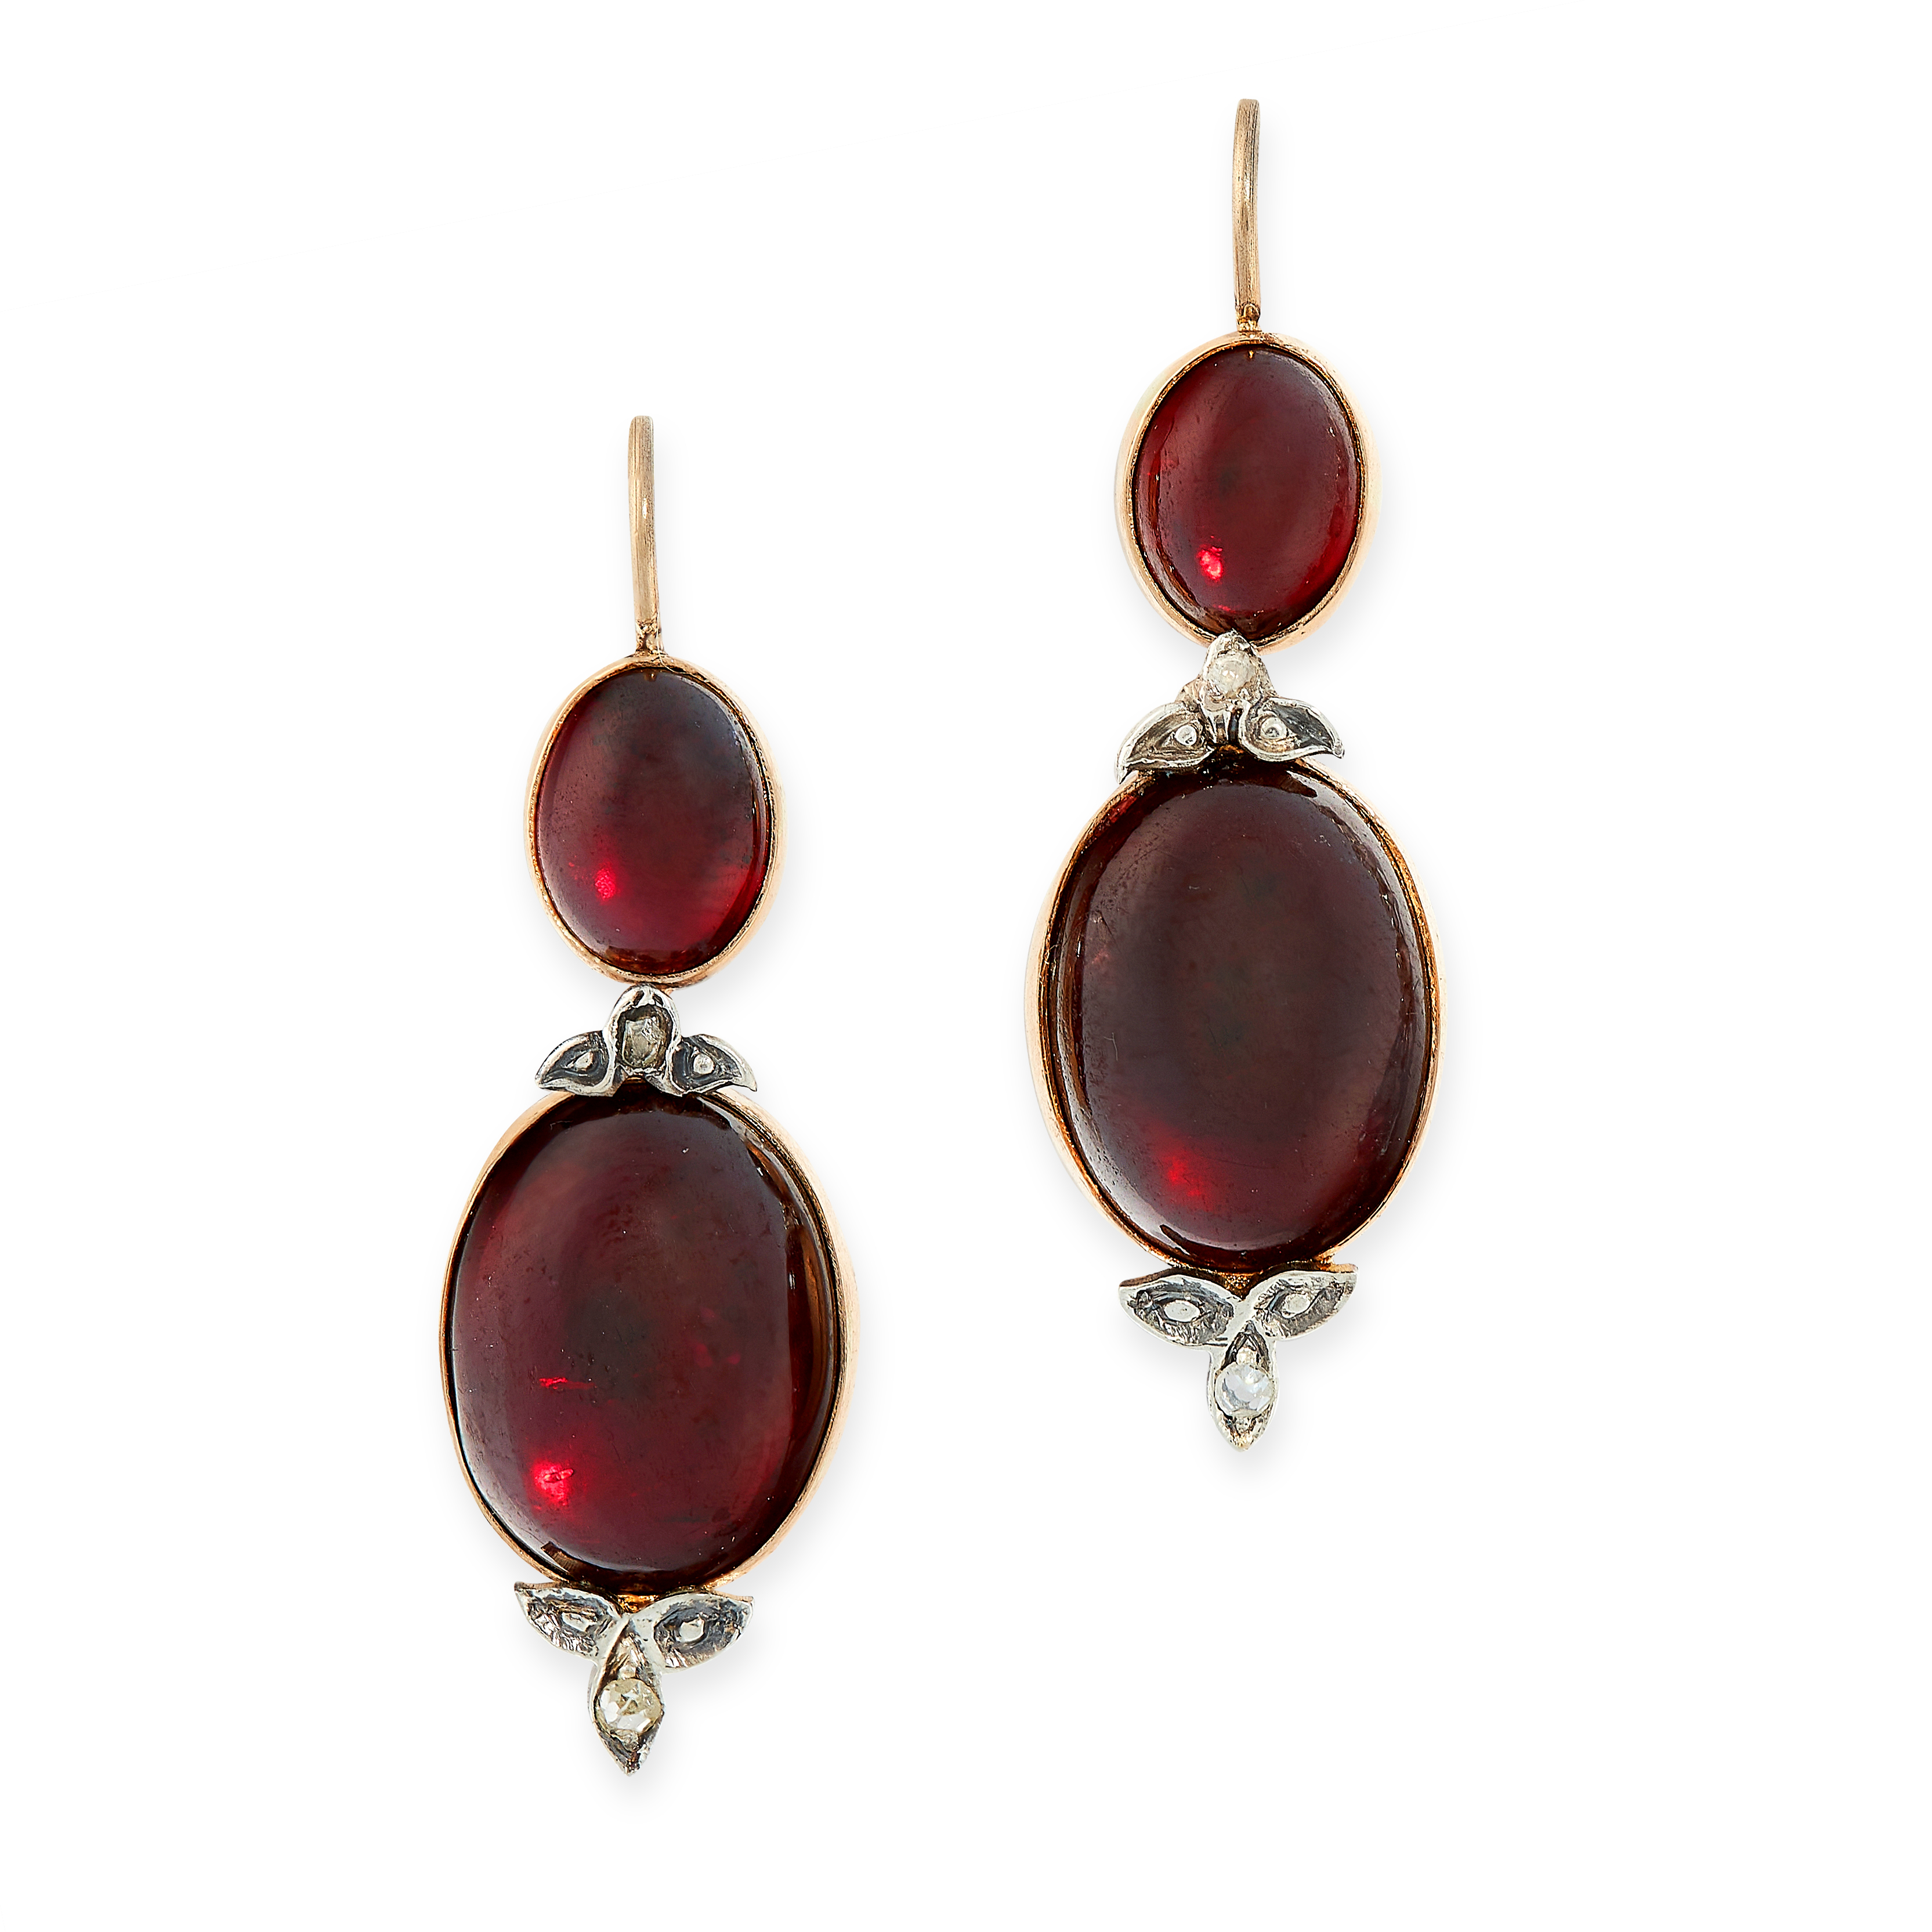 PAIR OF ANTIQUE GARNET AND DIAMOND EARRINGS in yellow gold, each comprising of two cabochon